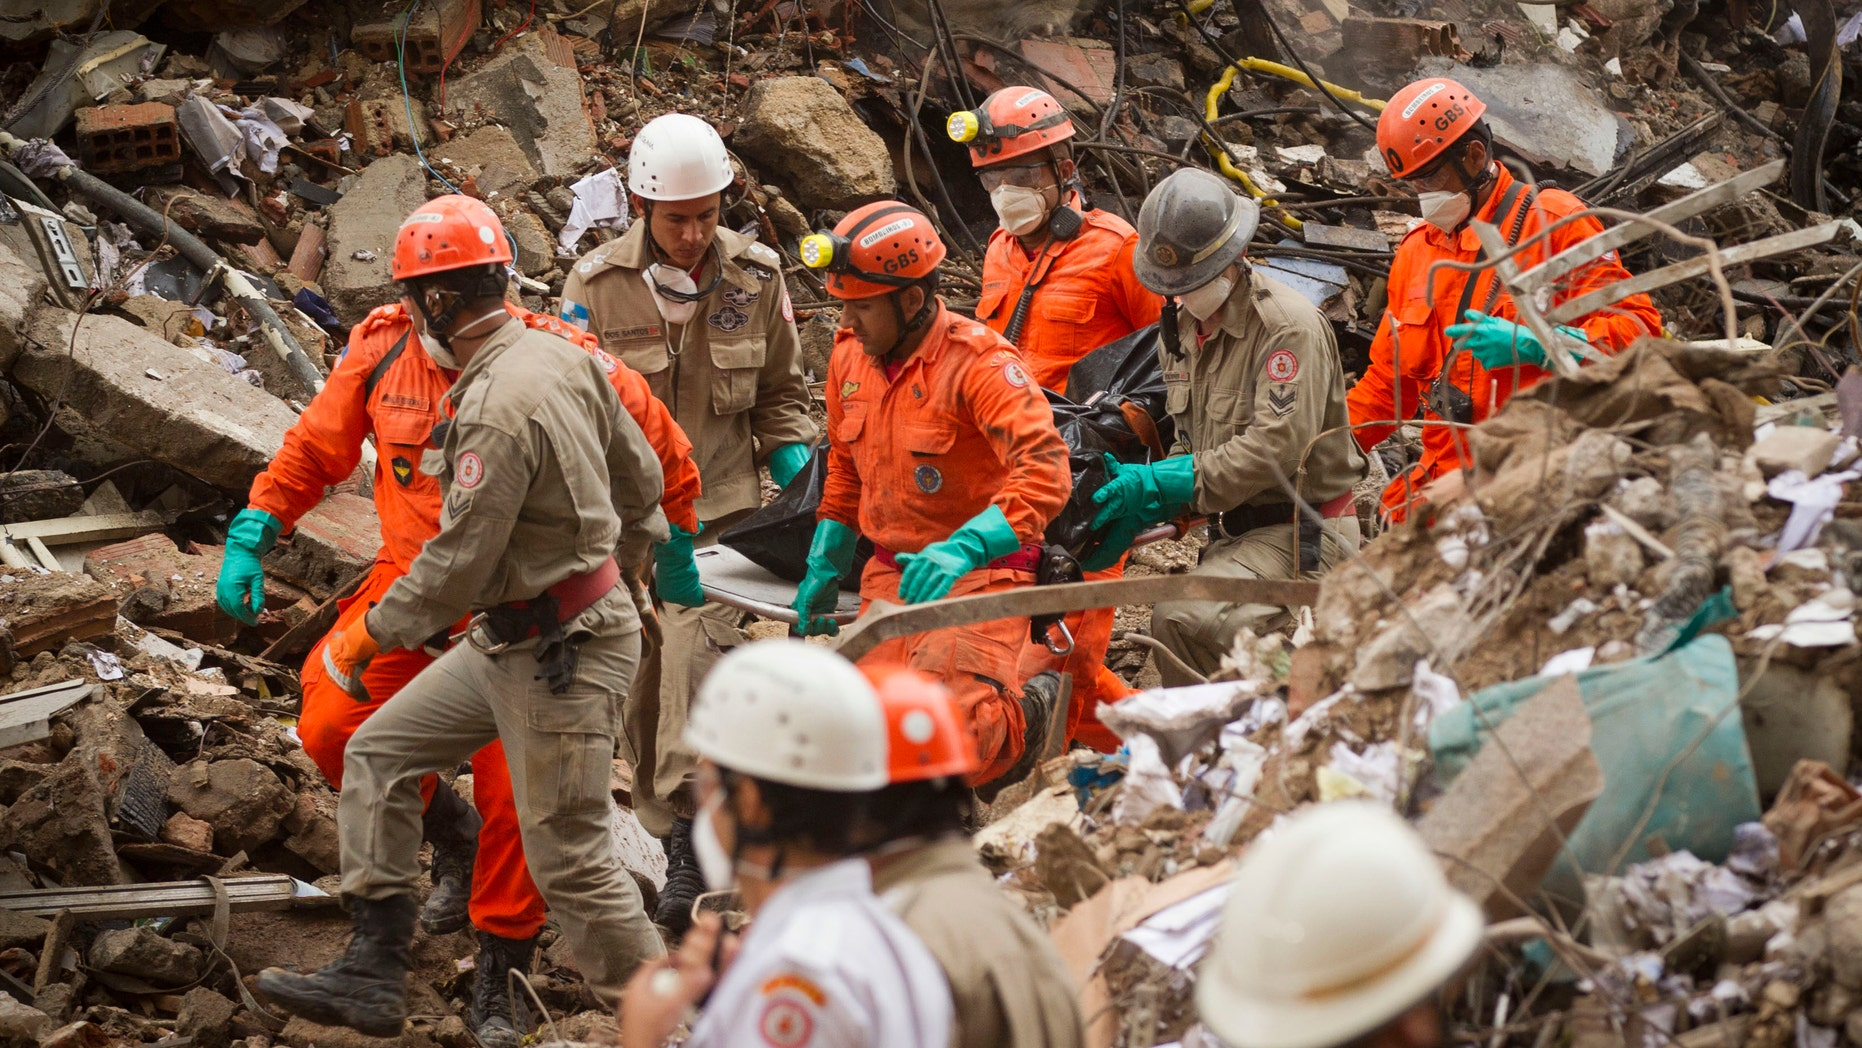 Firefighters carry away a body from the rubble after a building collapsed in downtown Rio de Janeiro, Brazil, Friday Jan. 27, 2012.  The building collapsed on Wednesday, killing at least 9 people and at least 16 are still missing. (AP Photo/Victor R. Caivano)